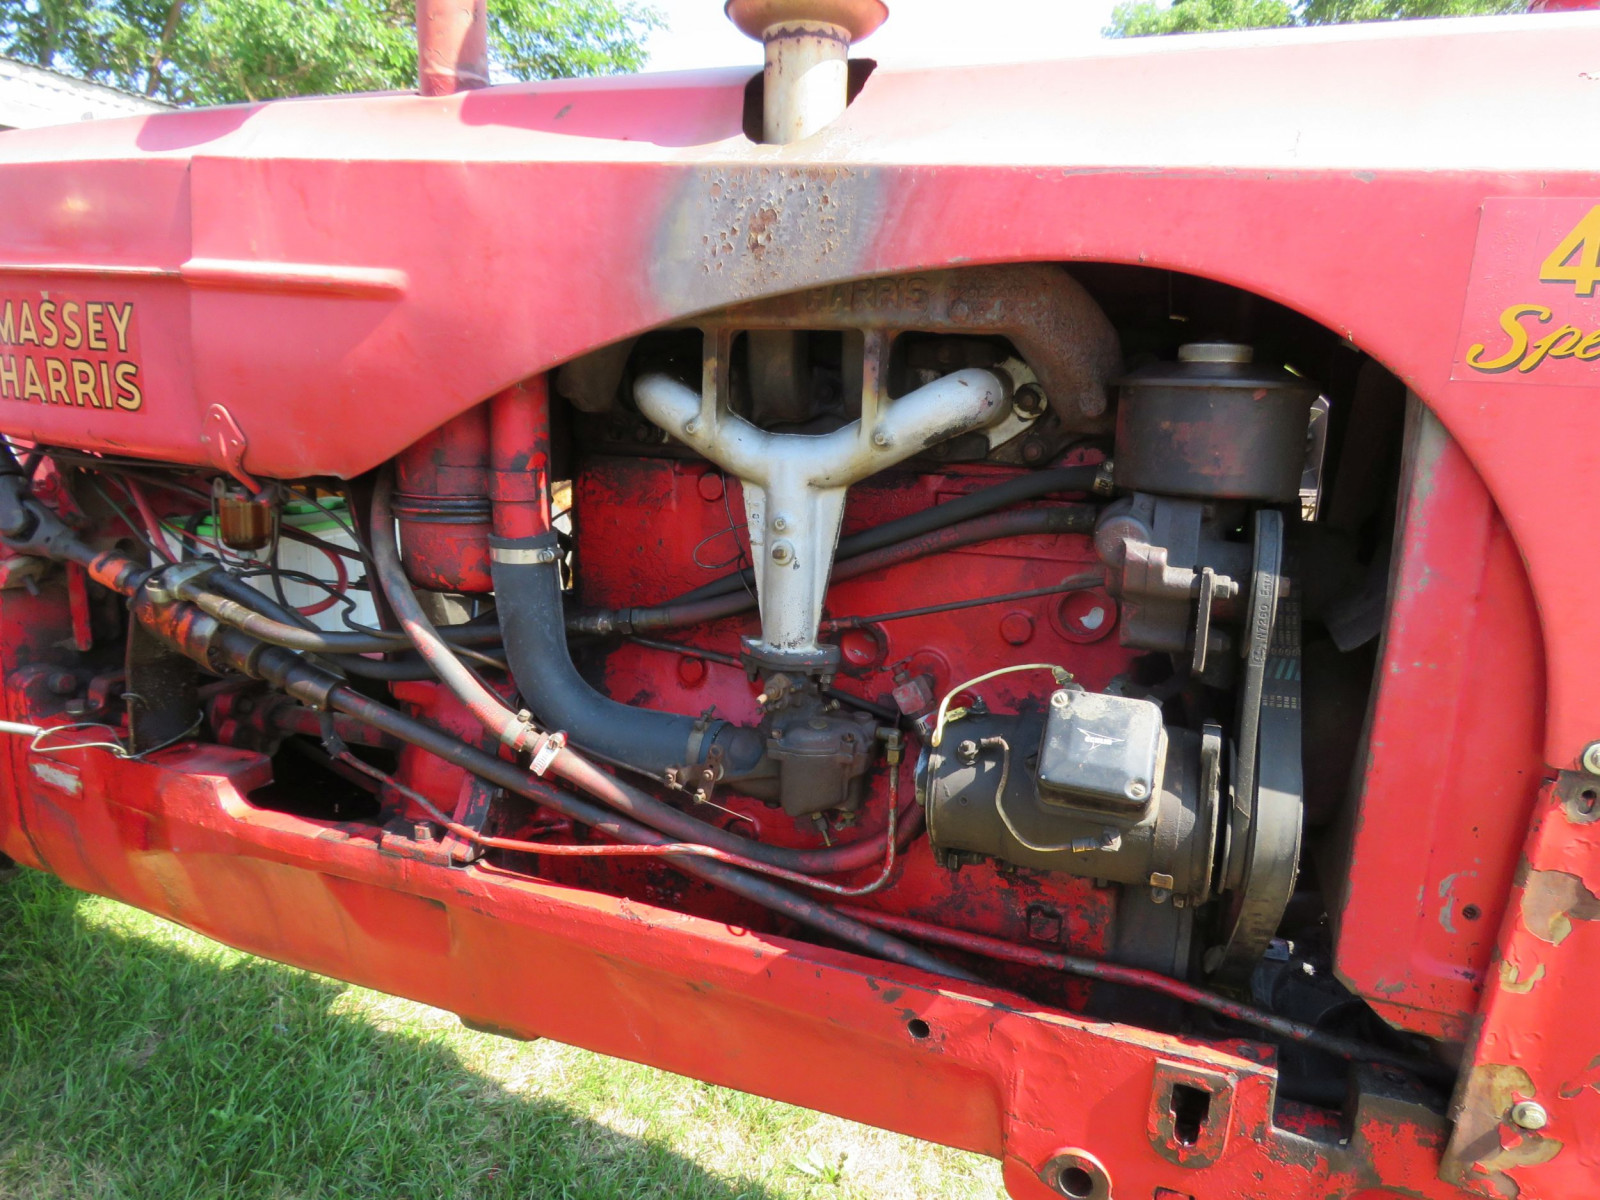 1955 Massey Harris 44 Special Tractor - Image 2